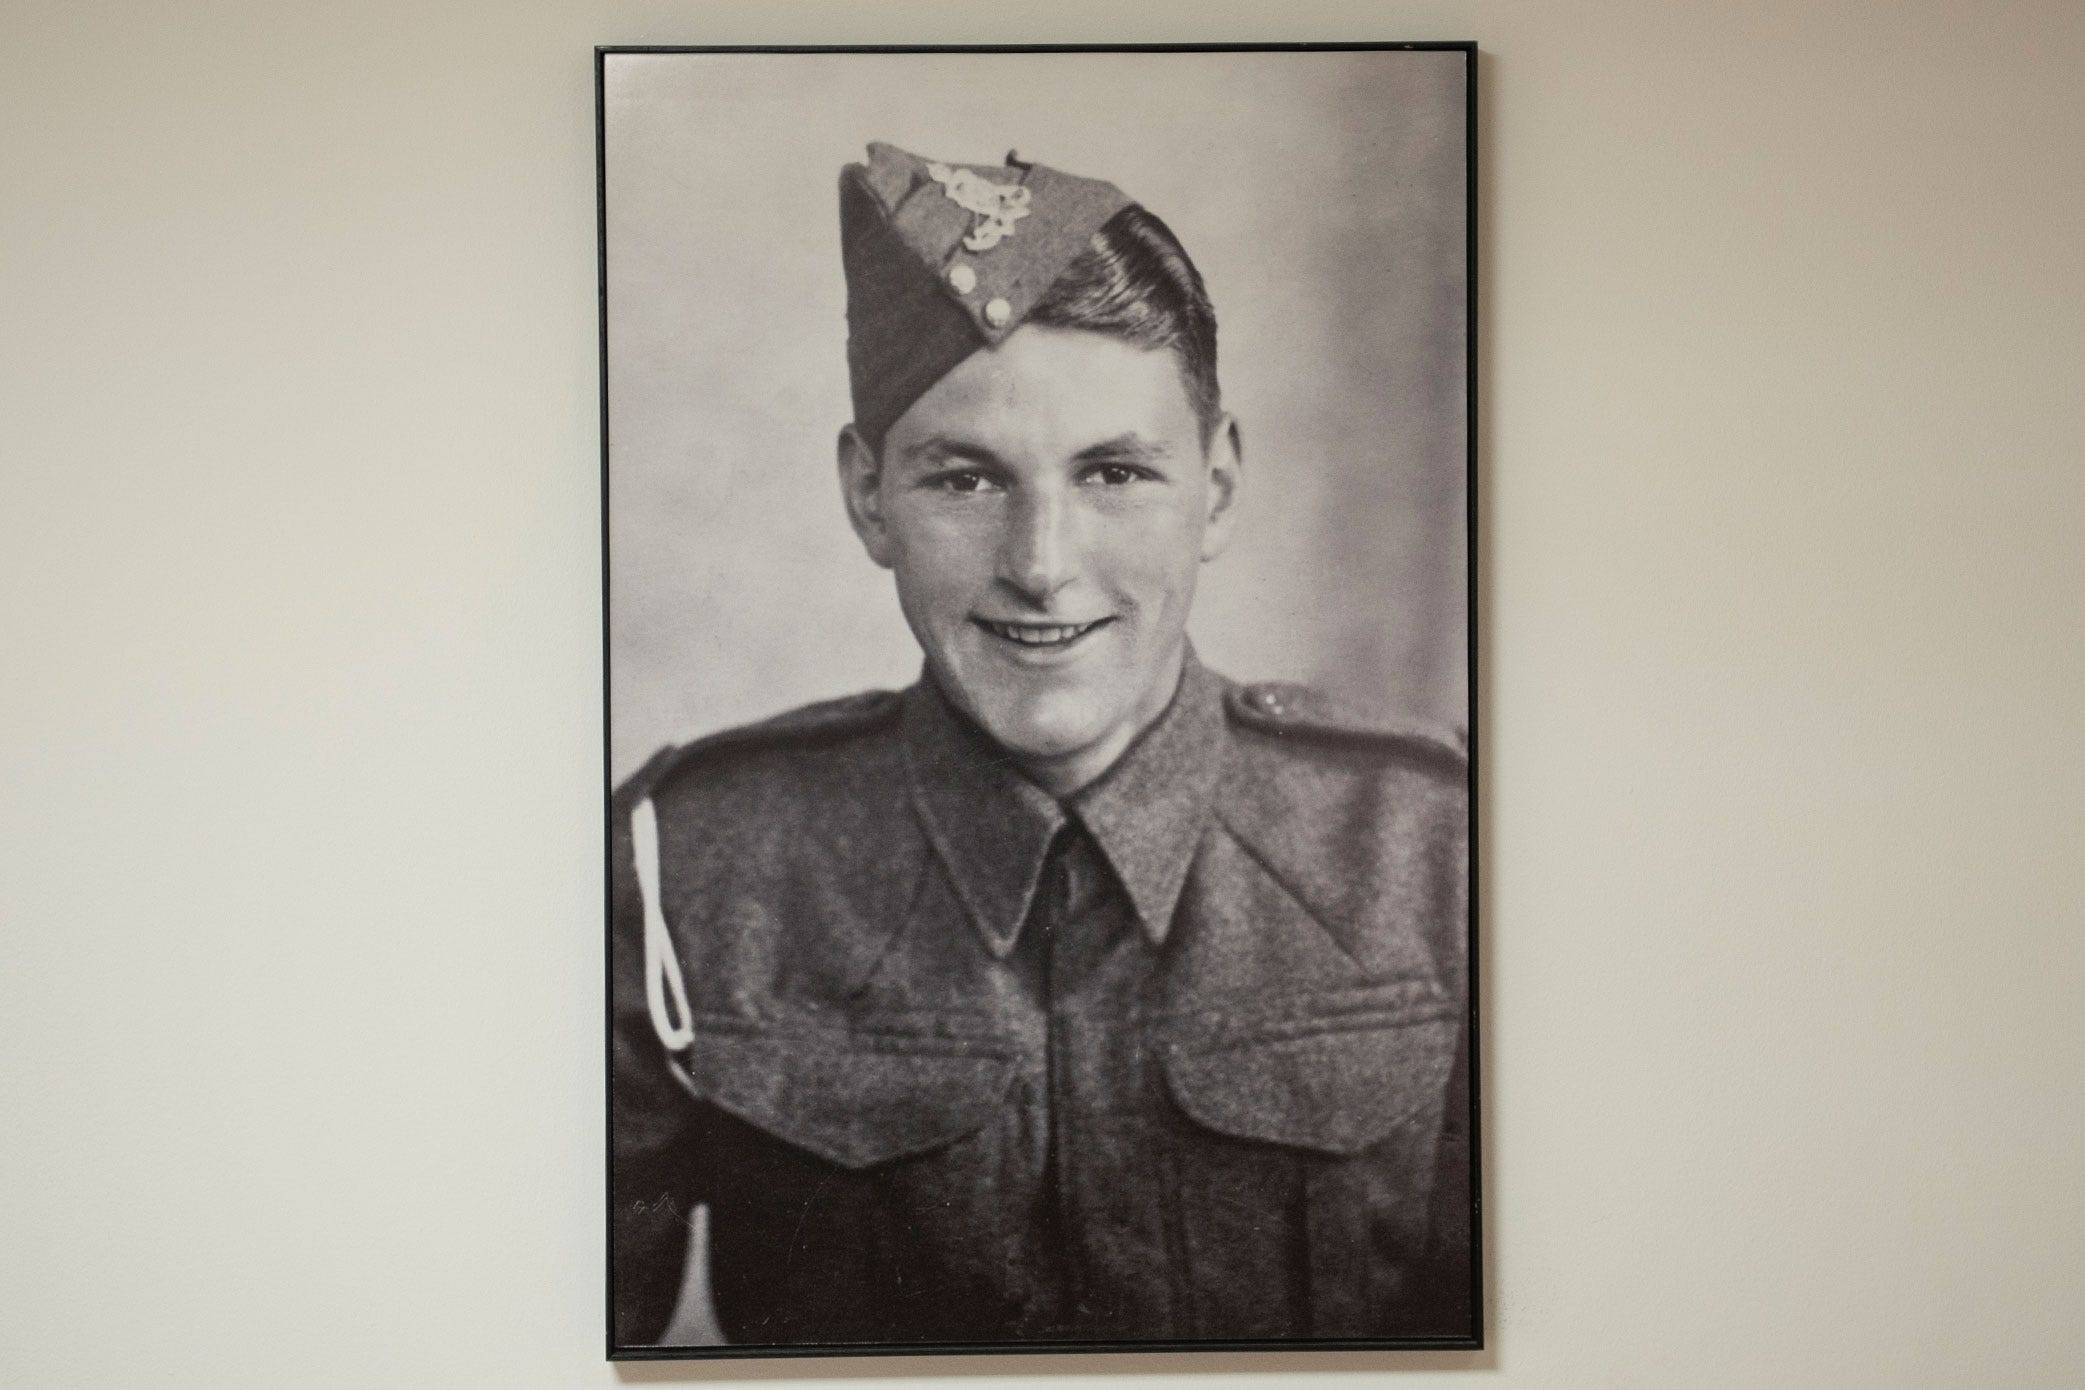 Owen Barry wearing army uniform in 1946